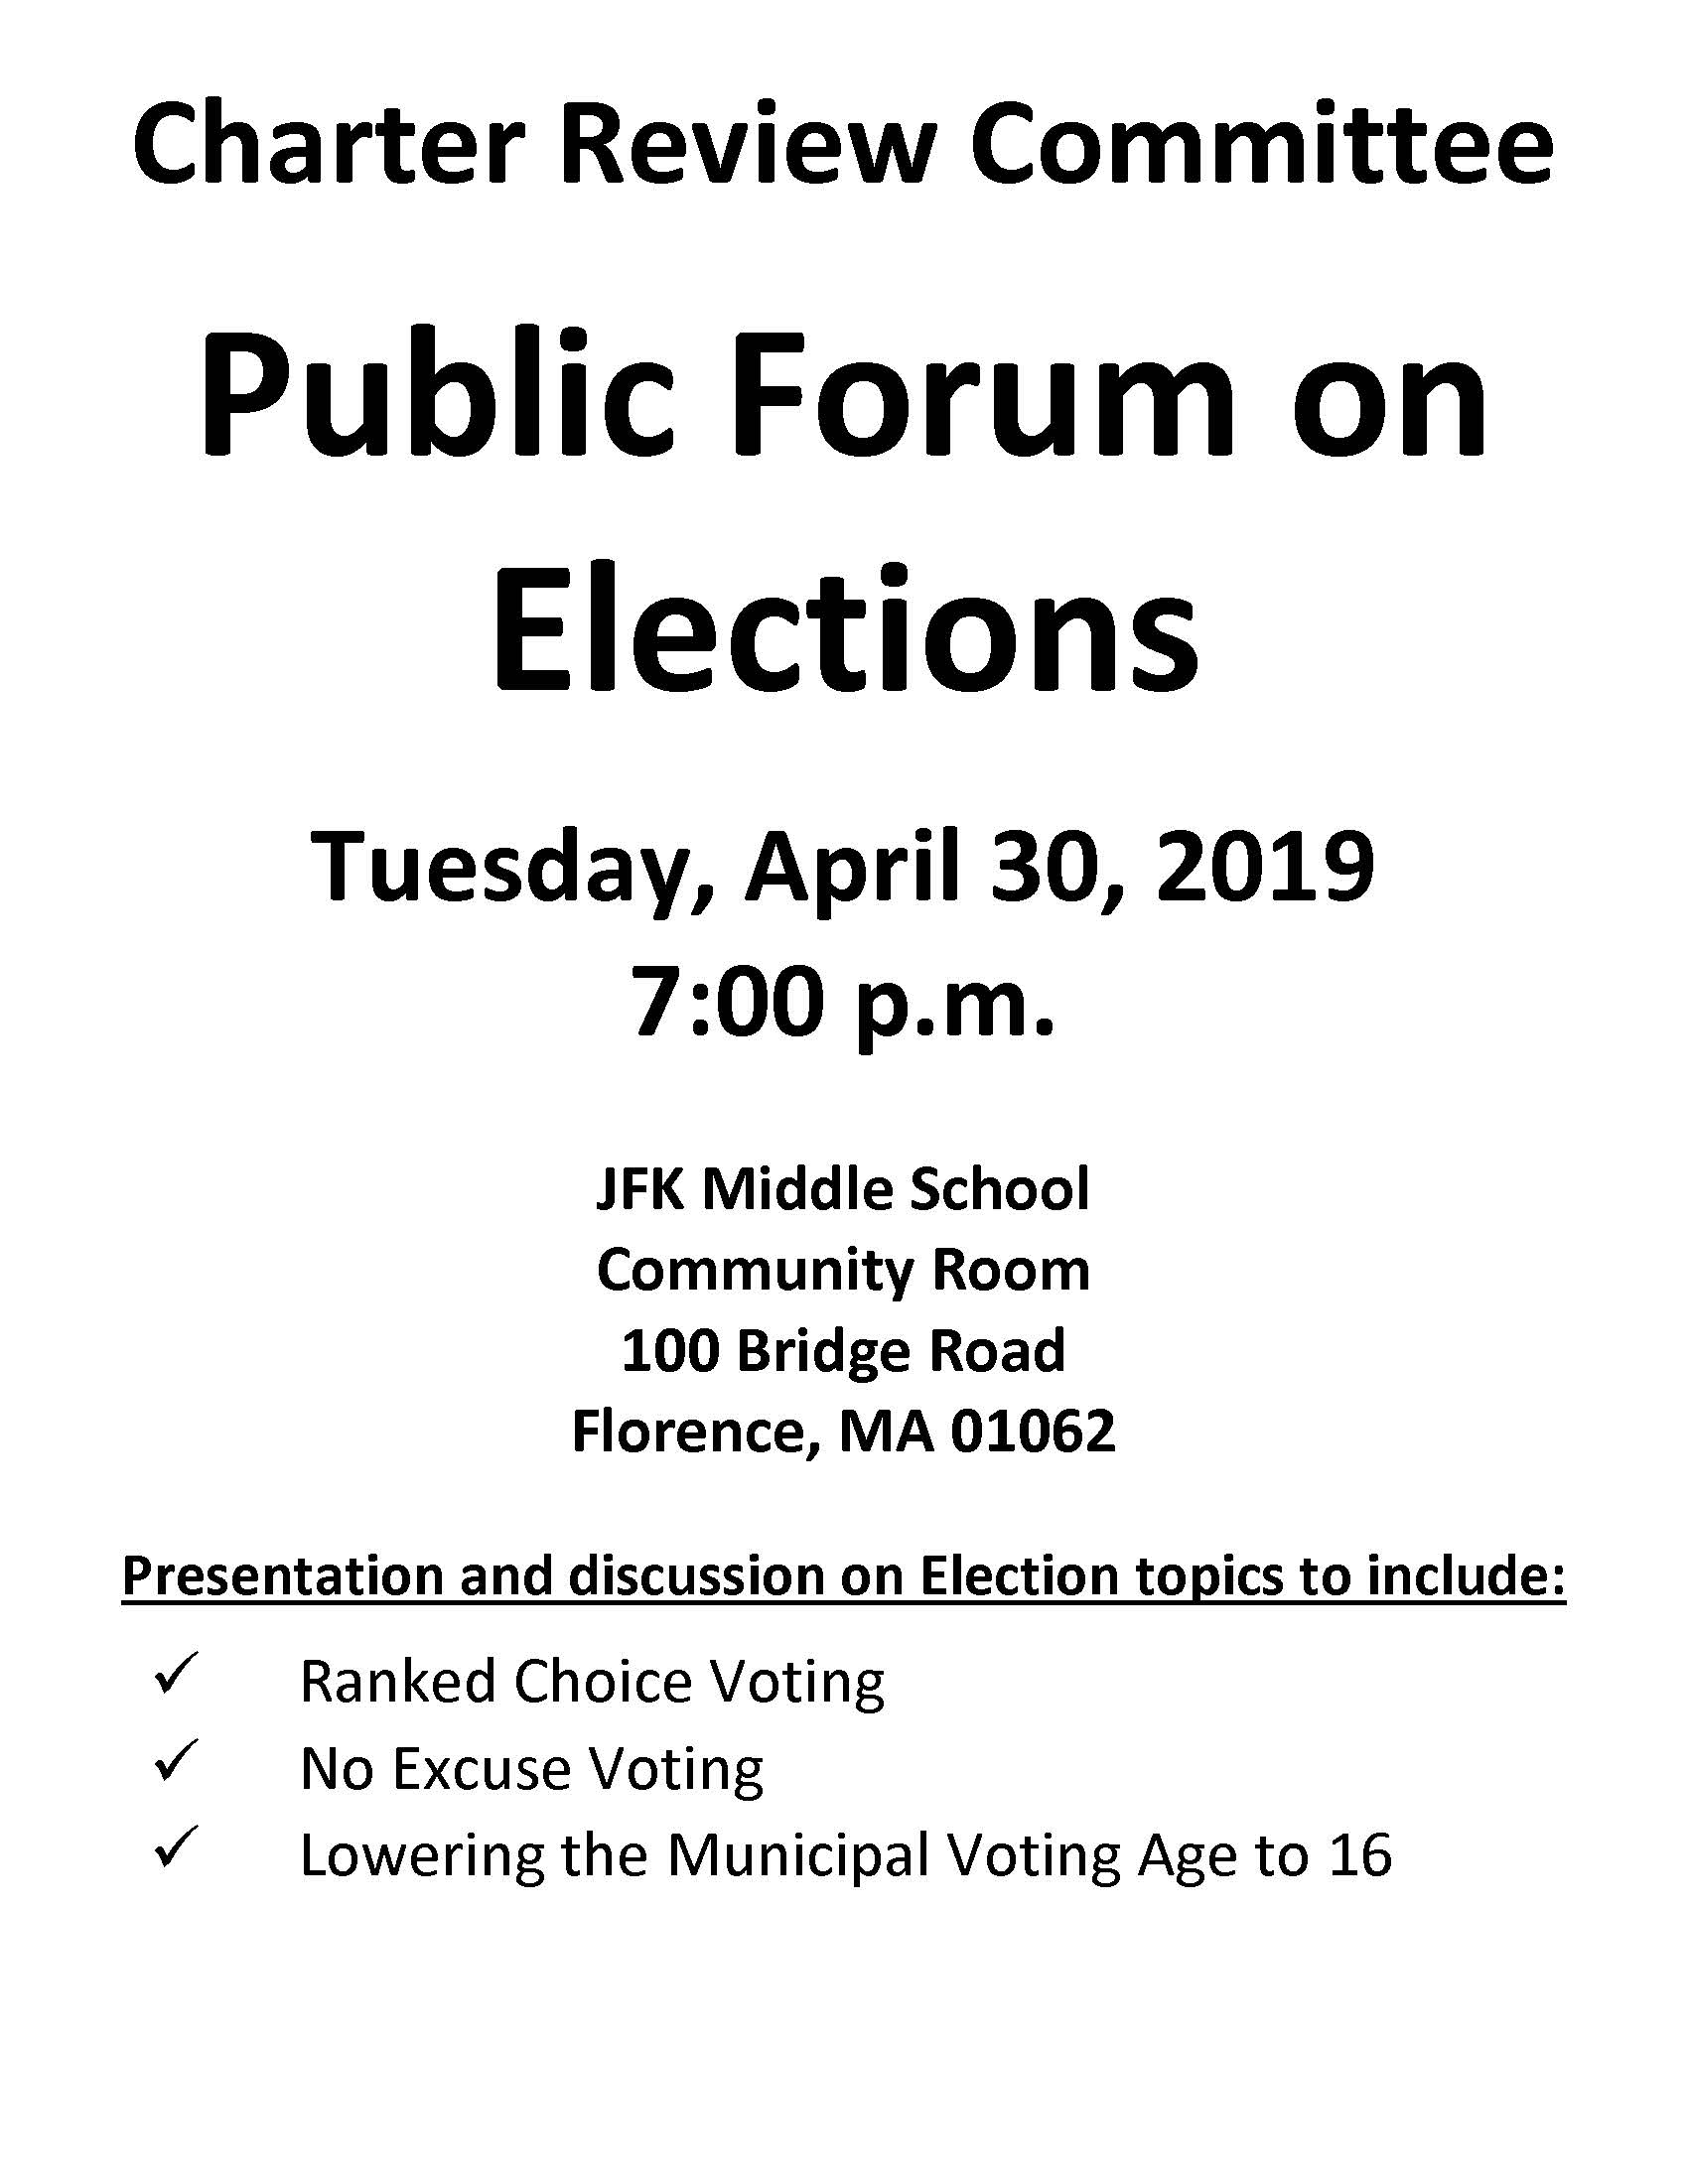 Image of Charter Review Committee Public Forum on Elections flyer